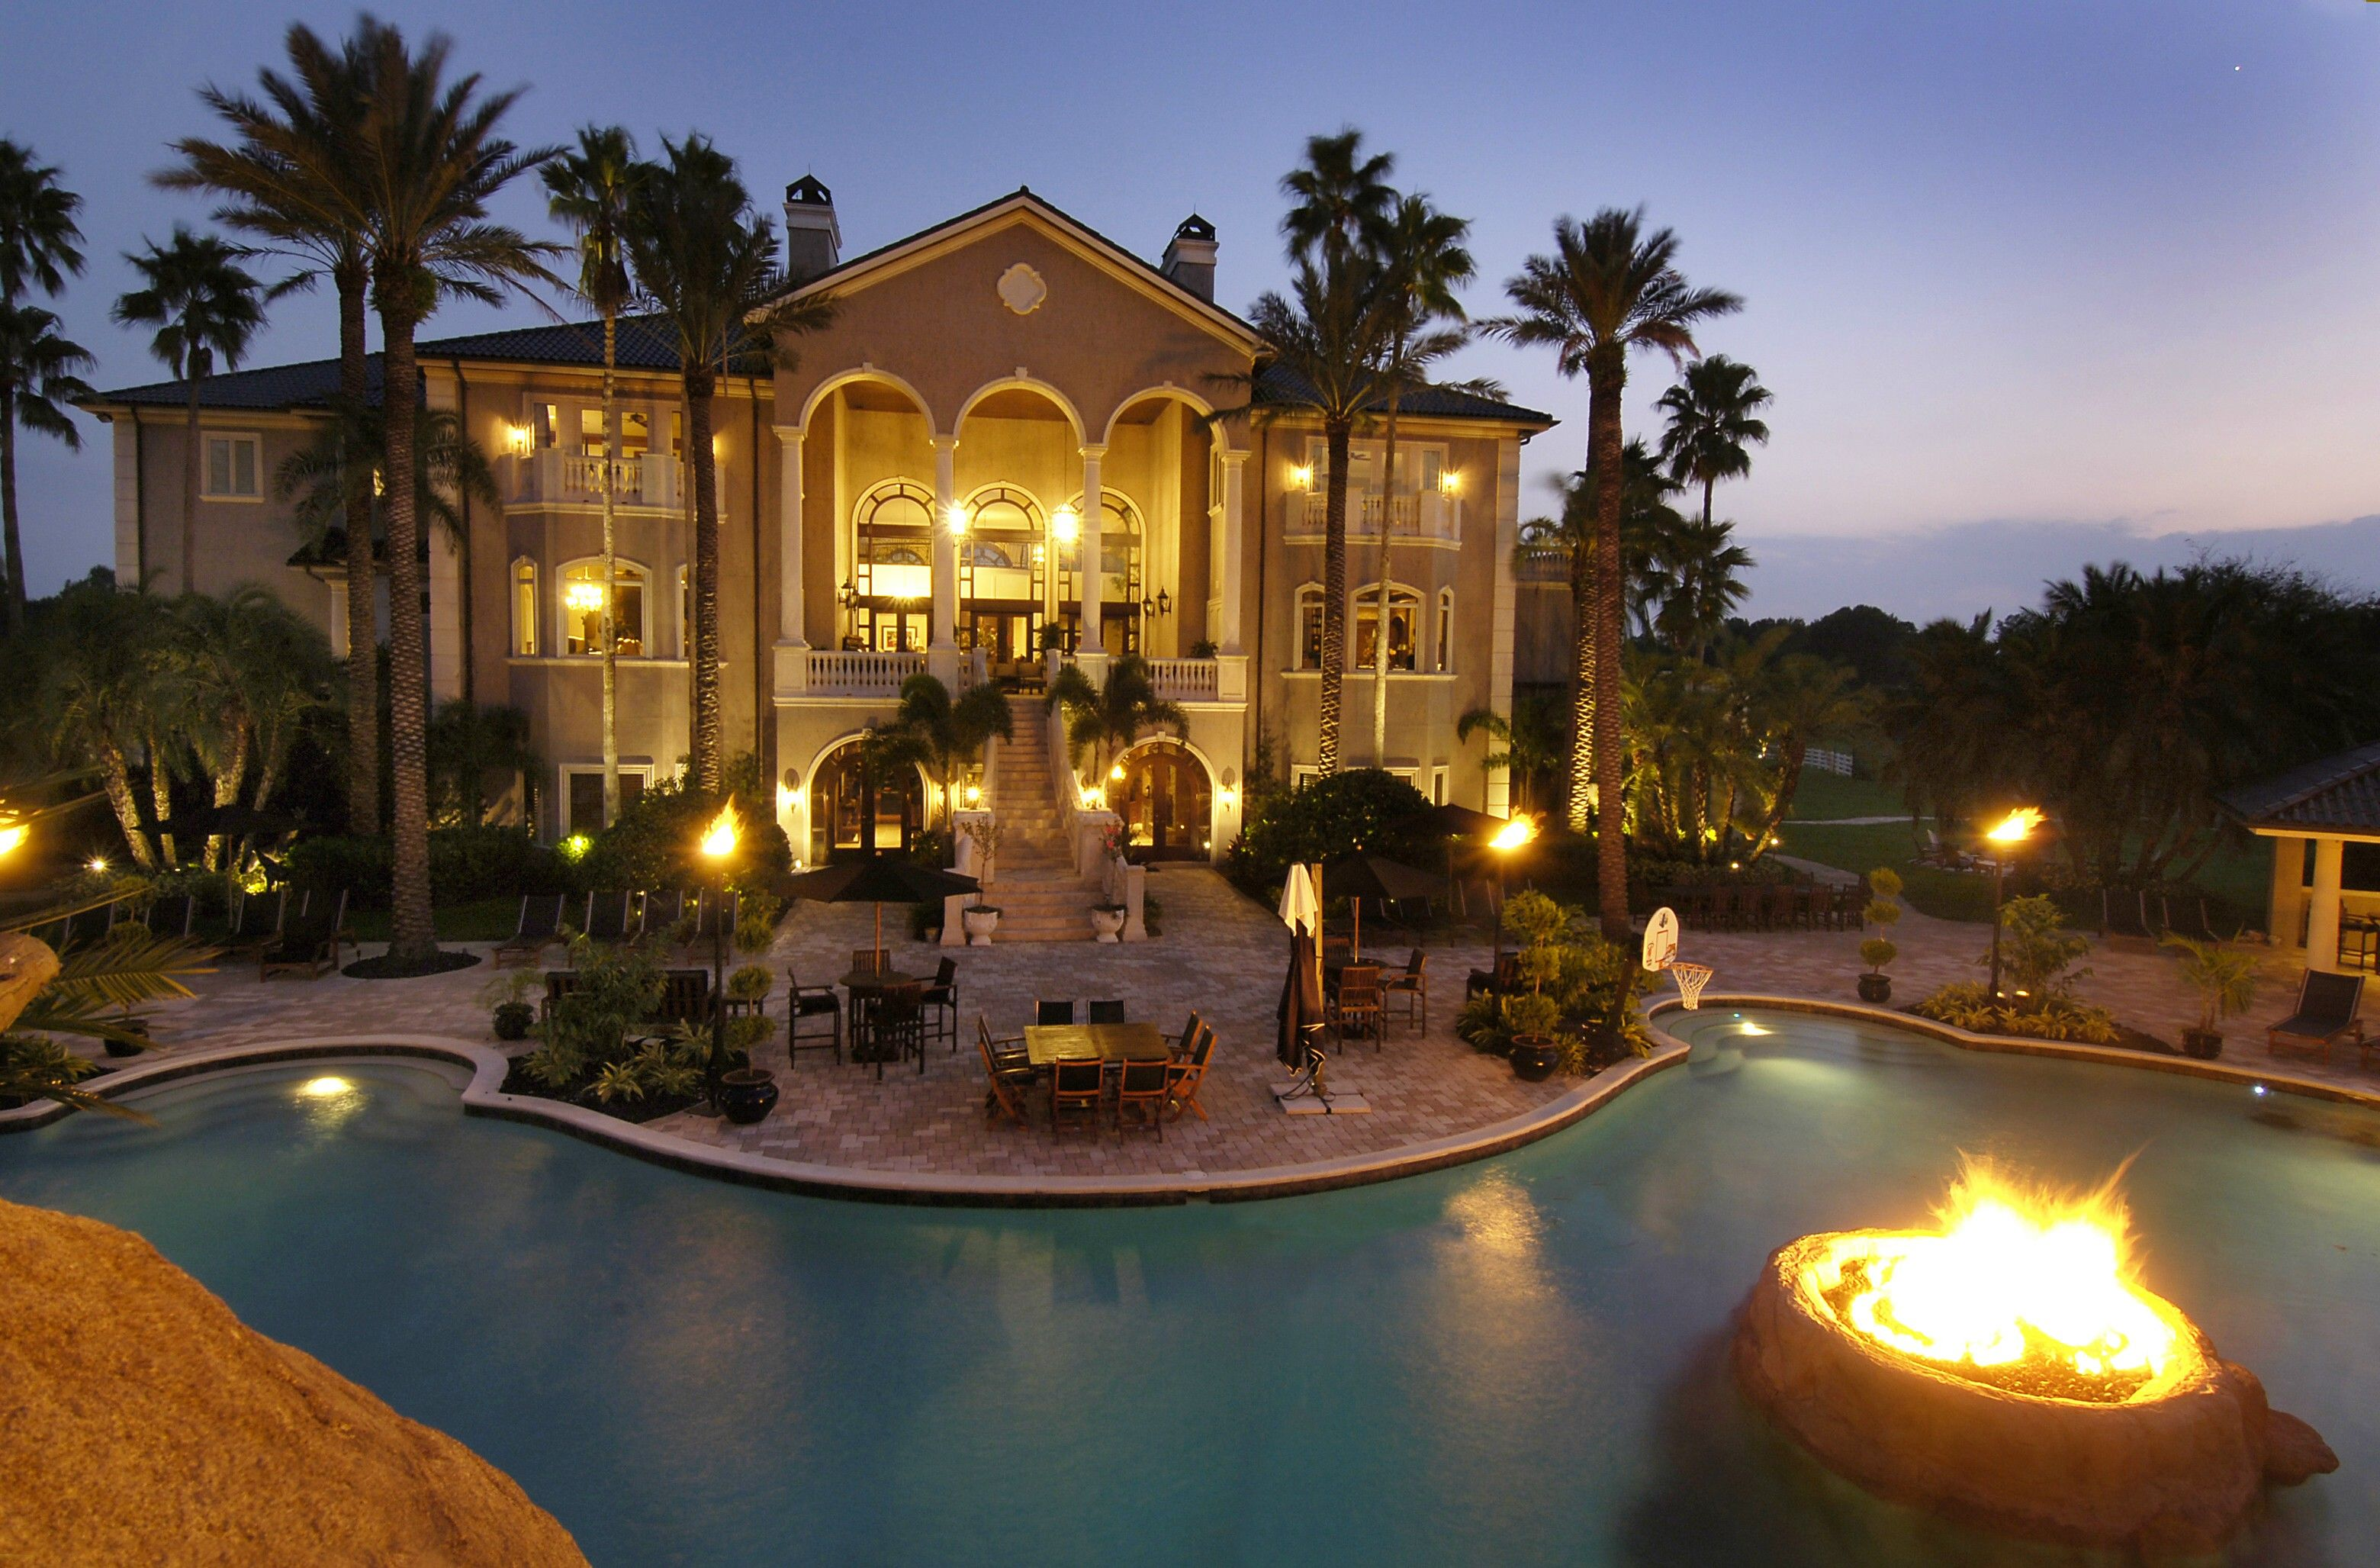 Awesome House With A Fire Pit In The Pool! Description From Pinterest.com.